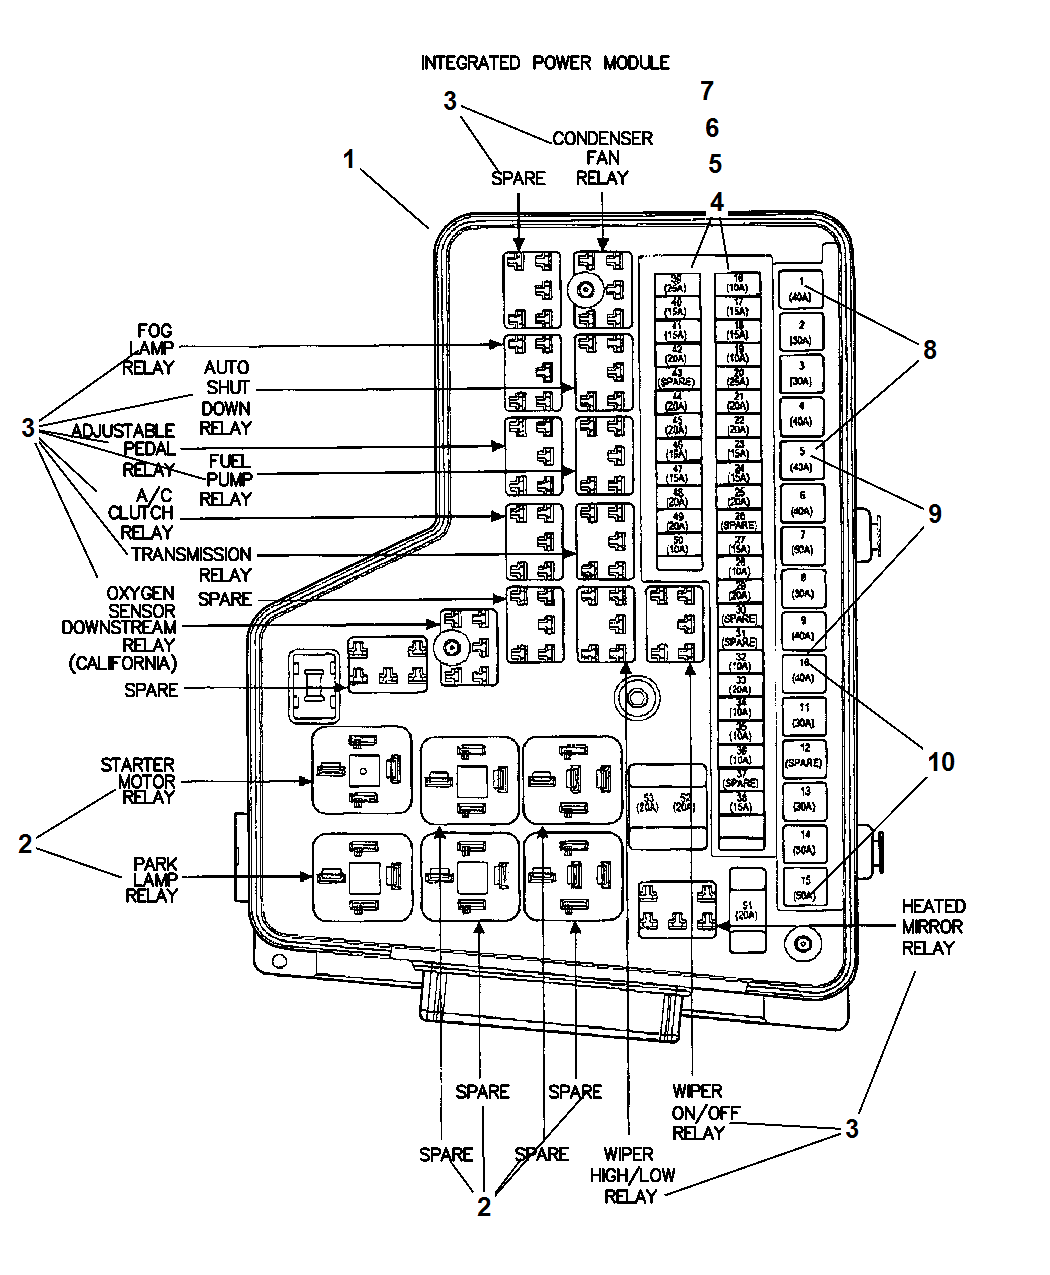 2003 Dodge Ram Fuse Diagram Wiring Diagrams Site Remind Split Remind Split Rimedifitoterapici It